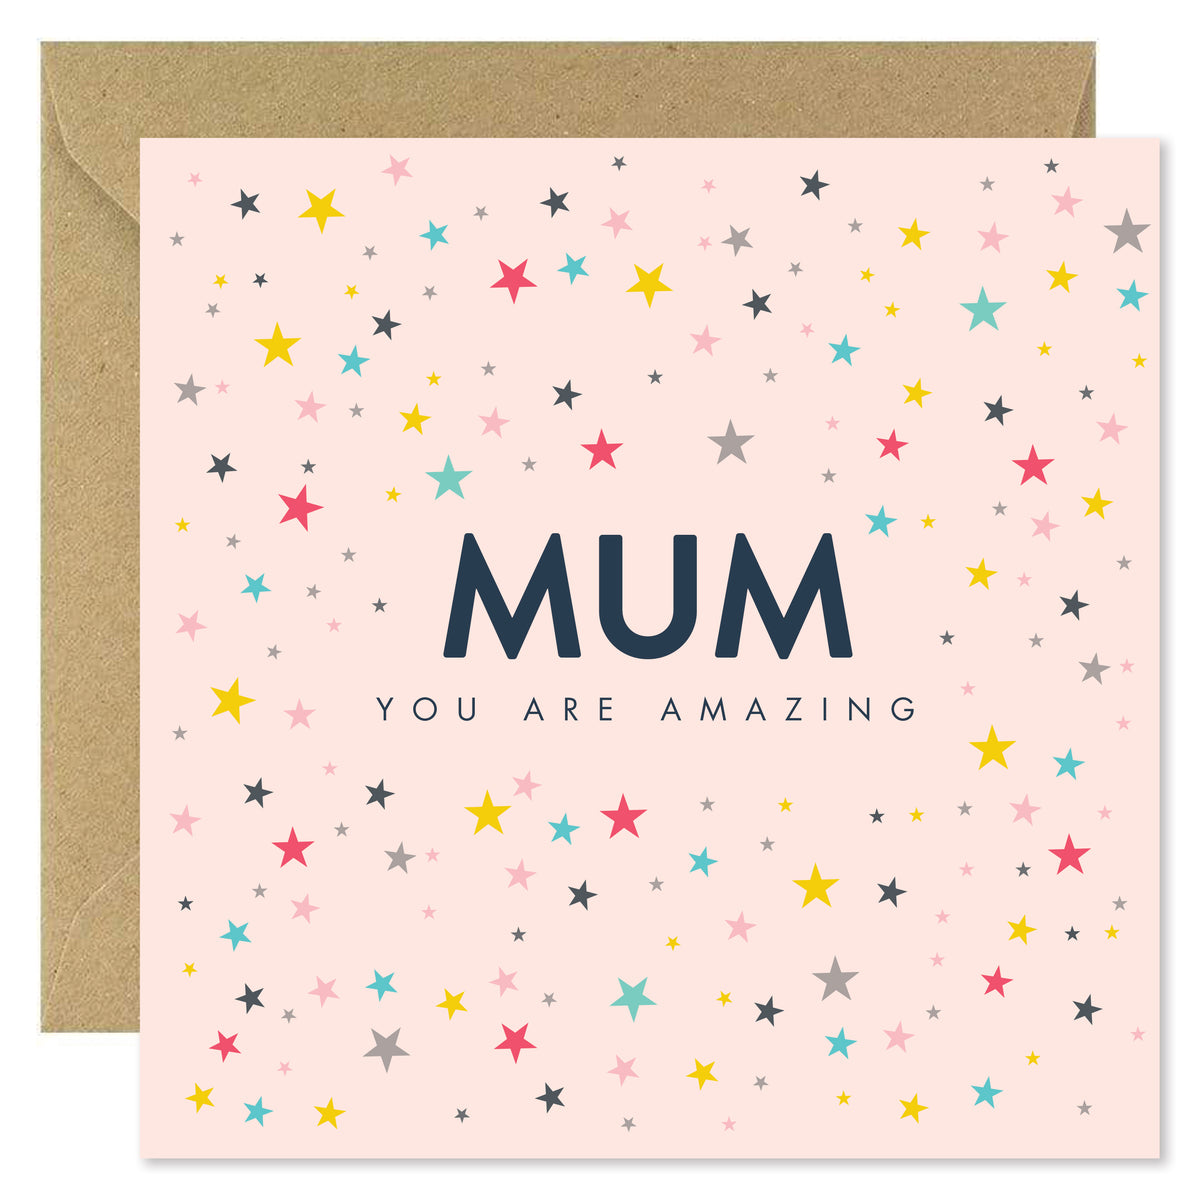 Mum You Are Amazing - Blush Stars